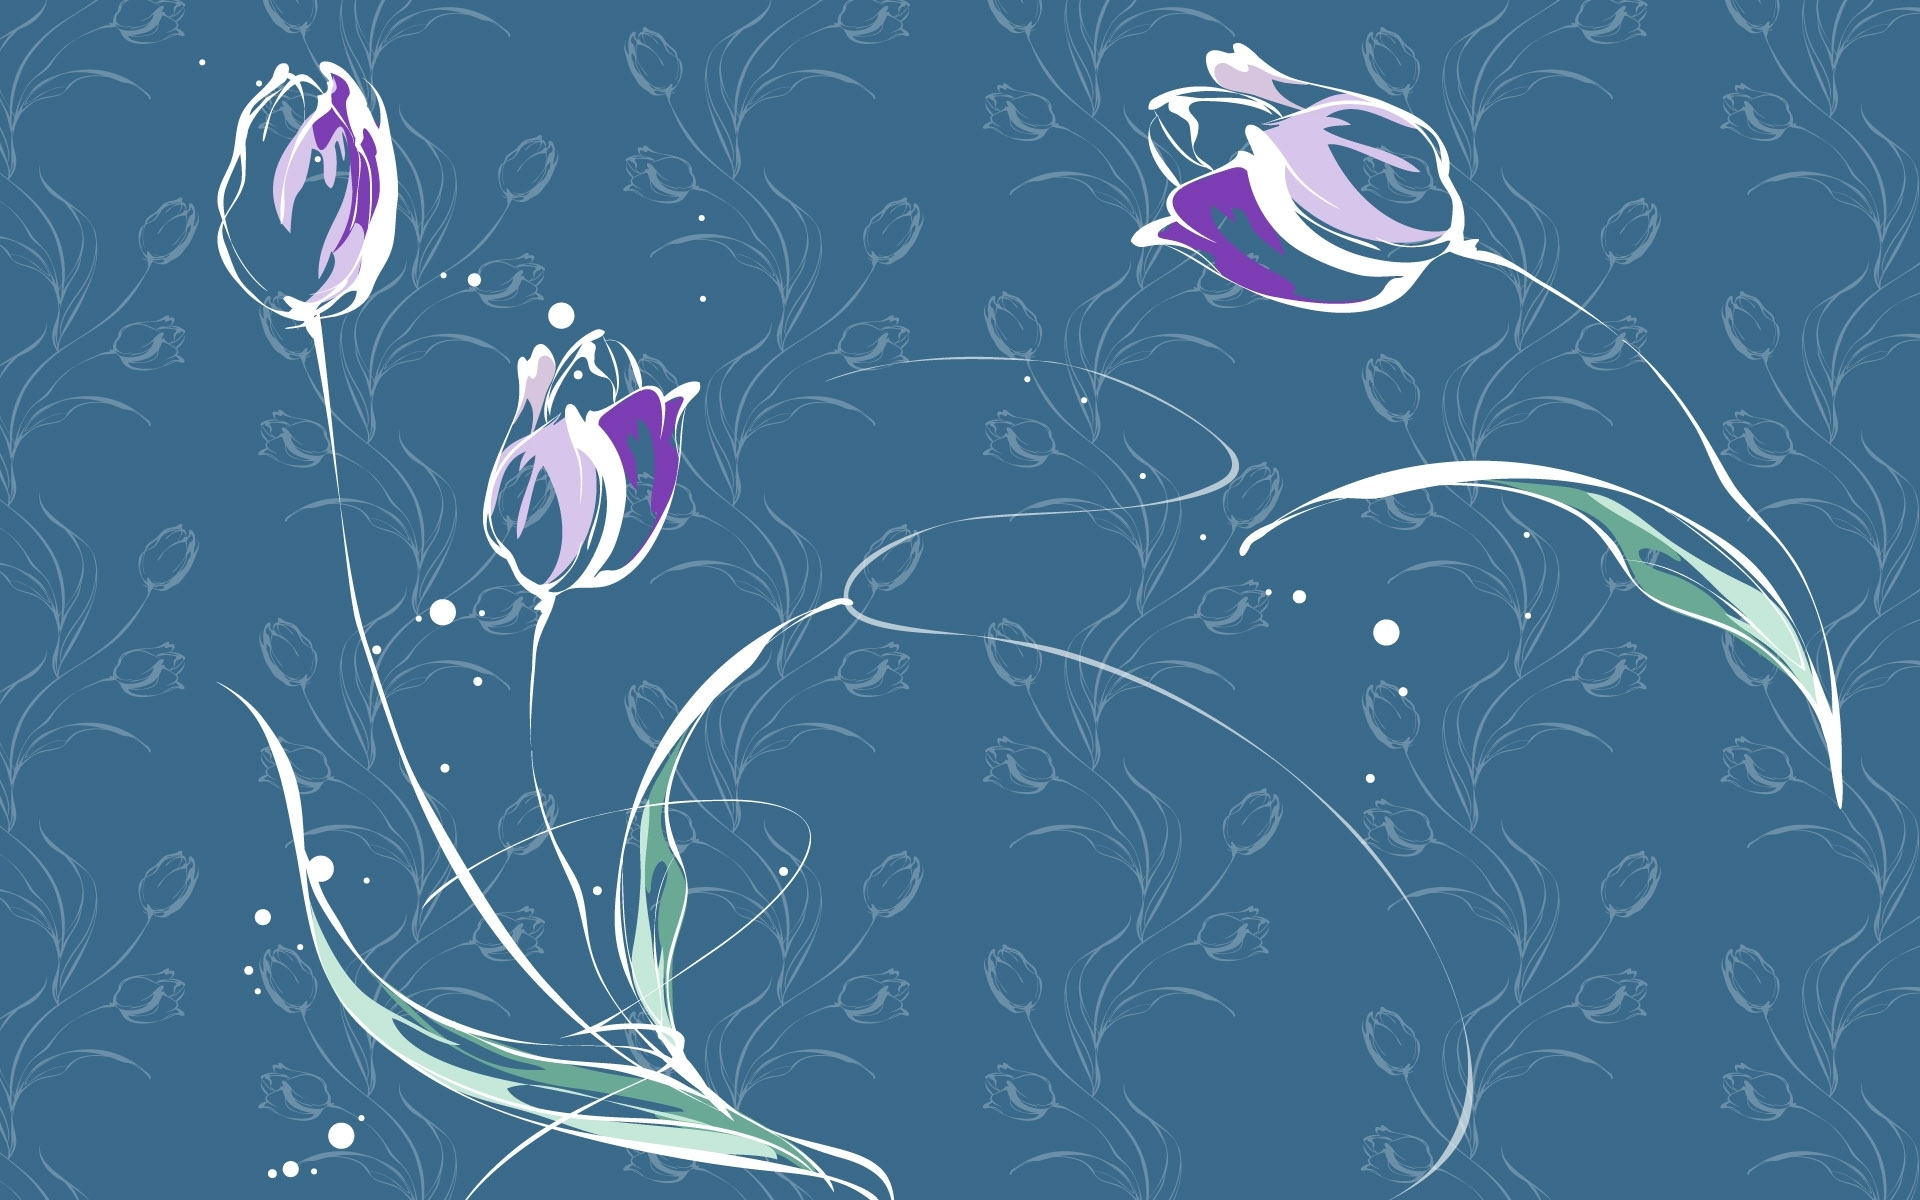 Free Colorful Flower Wallpaper Downloads: Abstract Flower Wallpaper